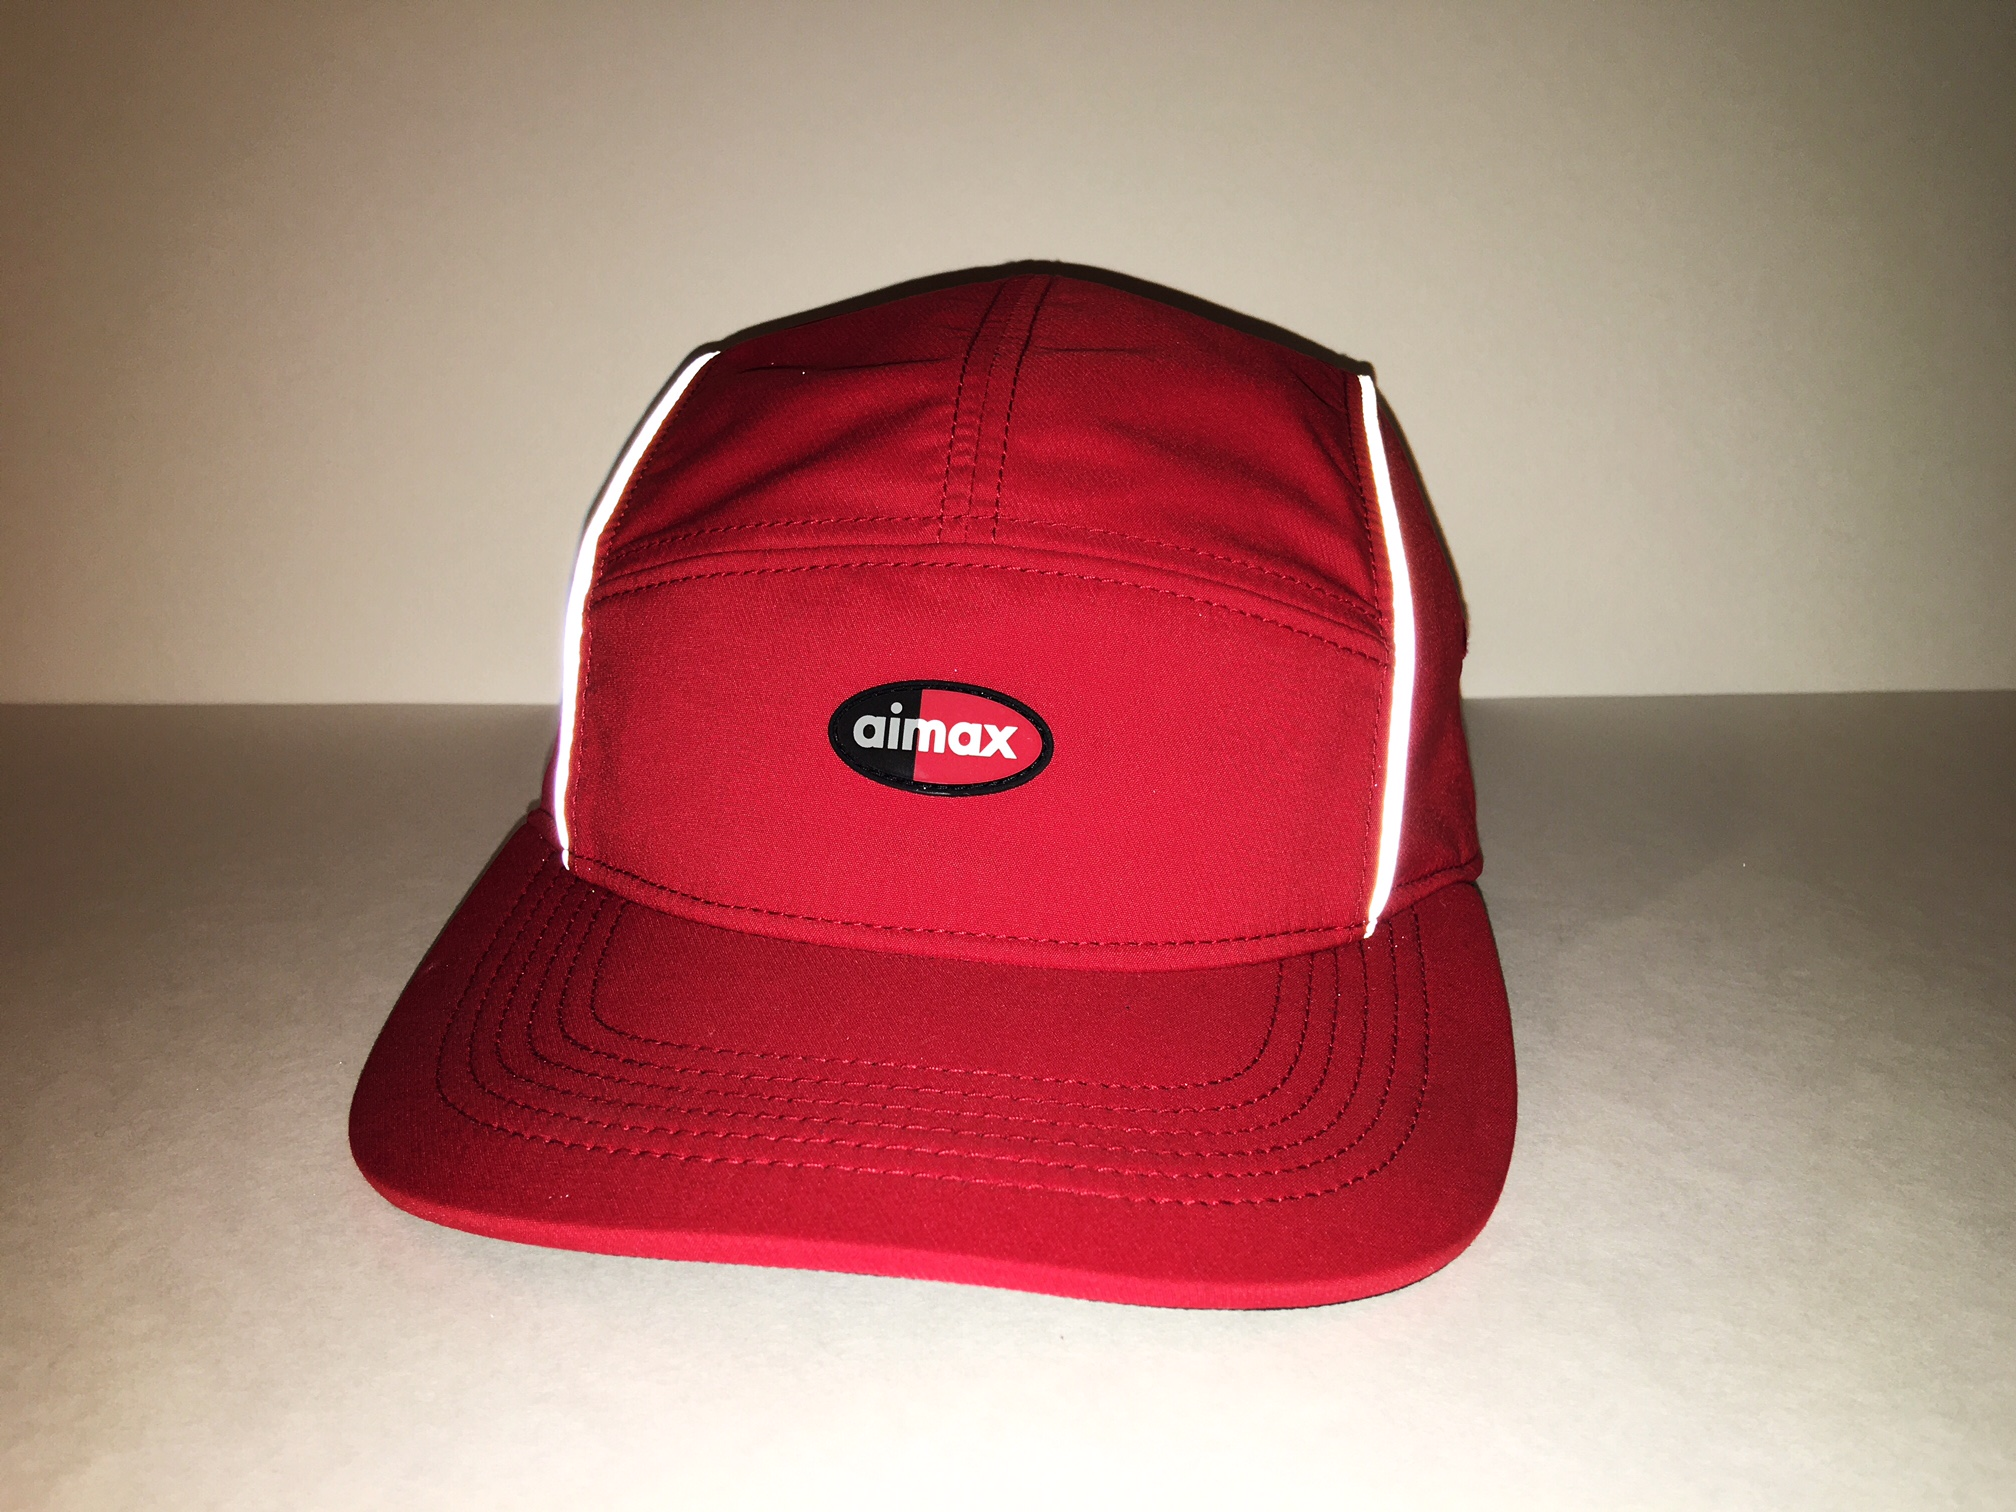 97c29bcc46b Supreme Supreme   Nike Air Max Running Hat - Red - S s 2016